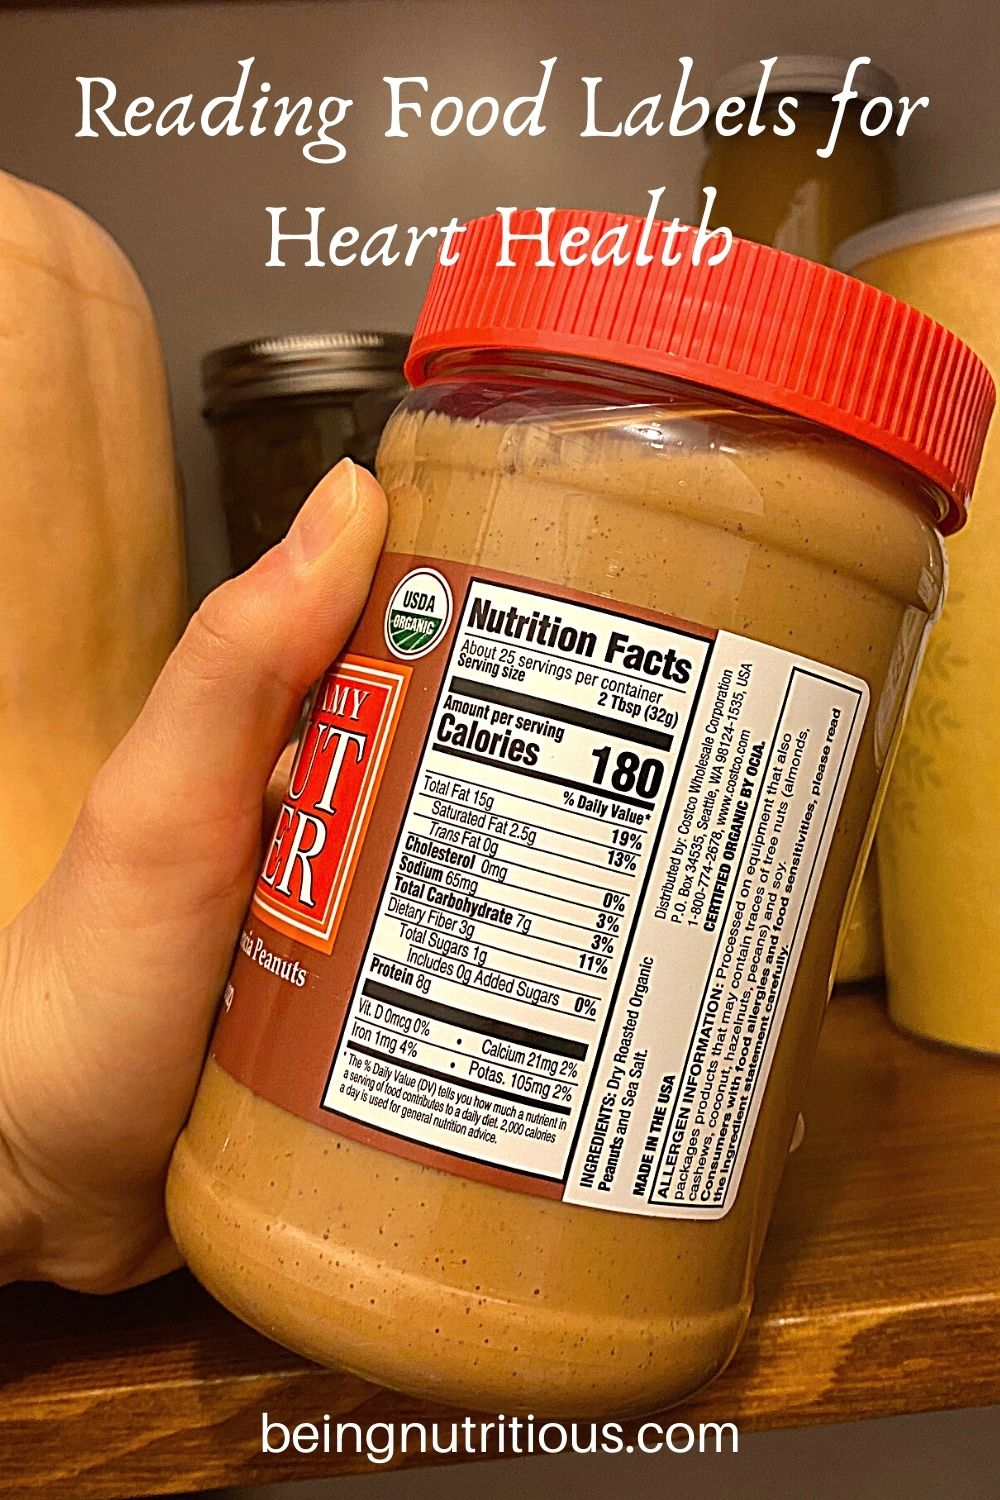 Hand holding a jar of peanut butter, with the nutrition facts label showing. Text overlay: Reading Food Labels for Heart Health